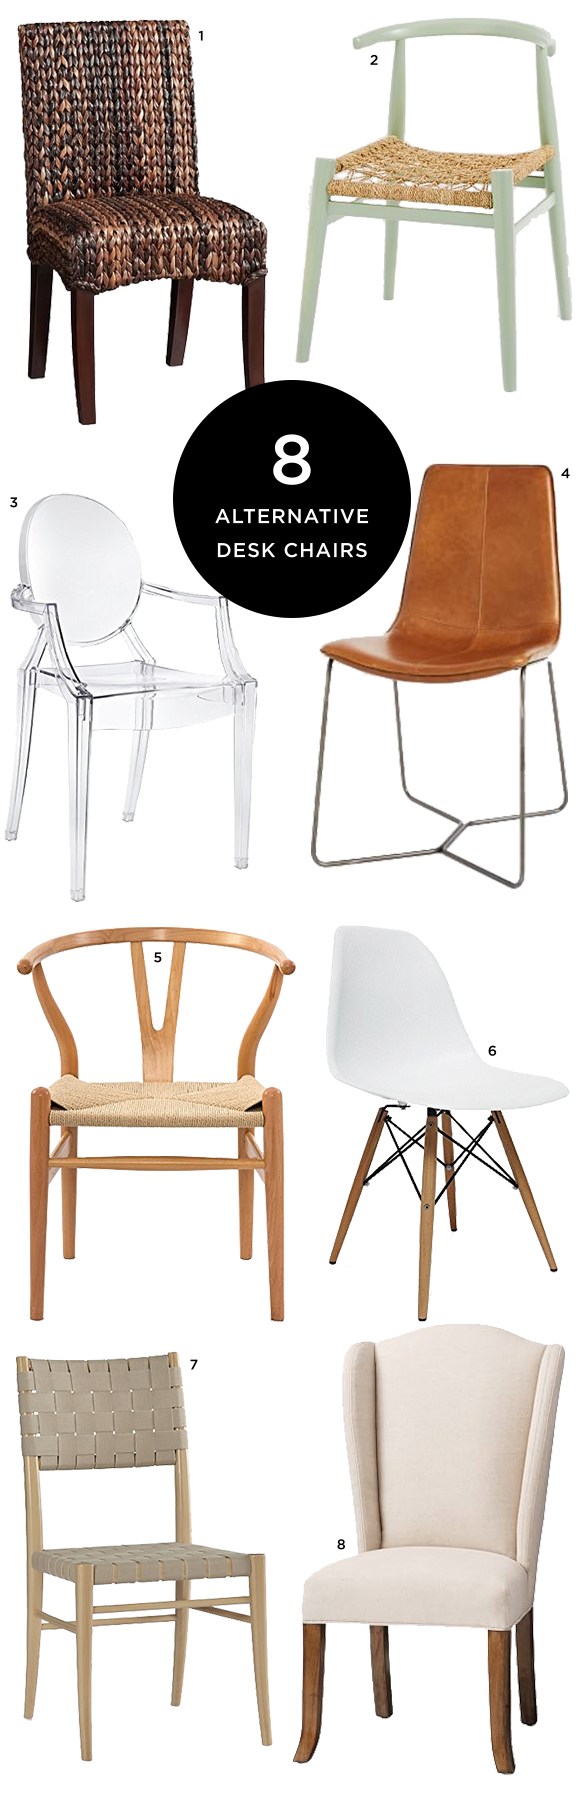 8 Alternative Desk Chairs Stylish Desk Finding A House Home